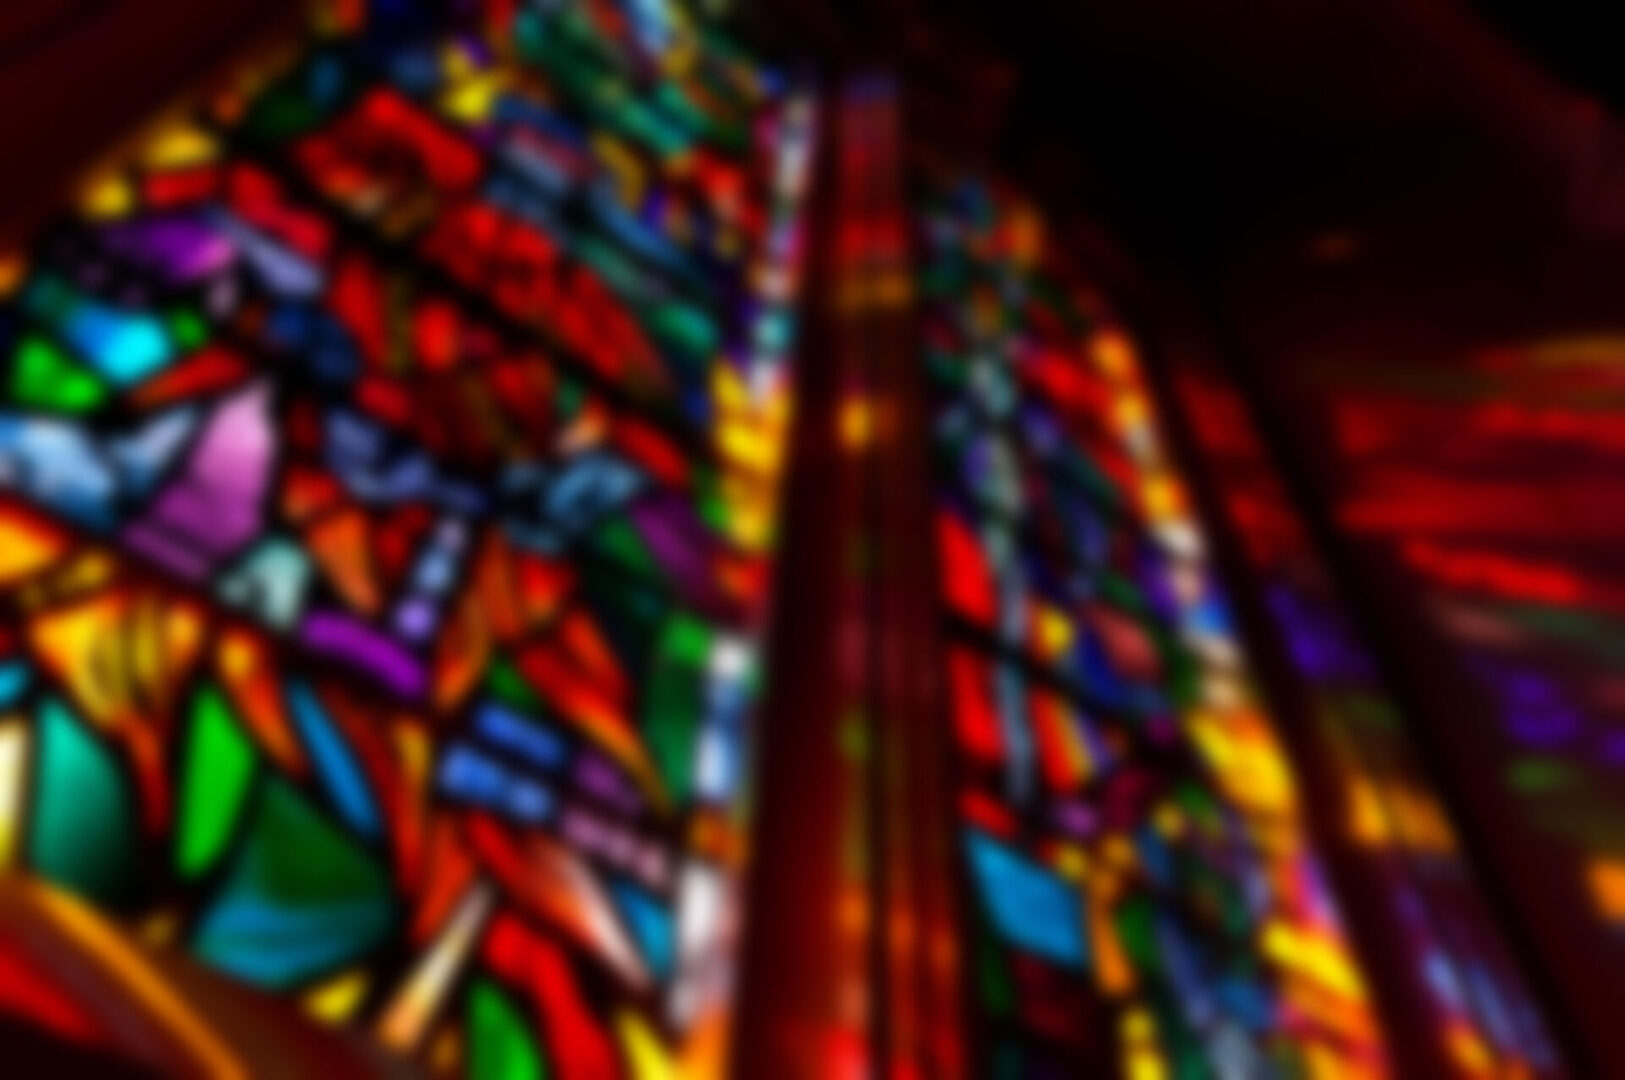 illumination-of-stained-glass_making-stained-glass-an-exhilarating-experience_terhaarglass.com